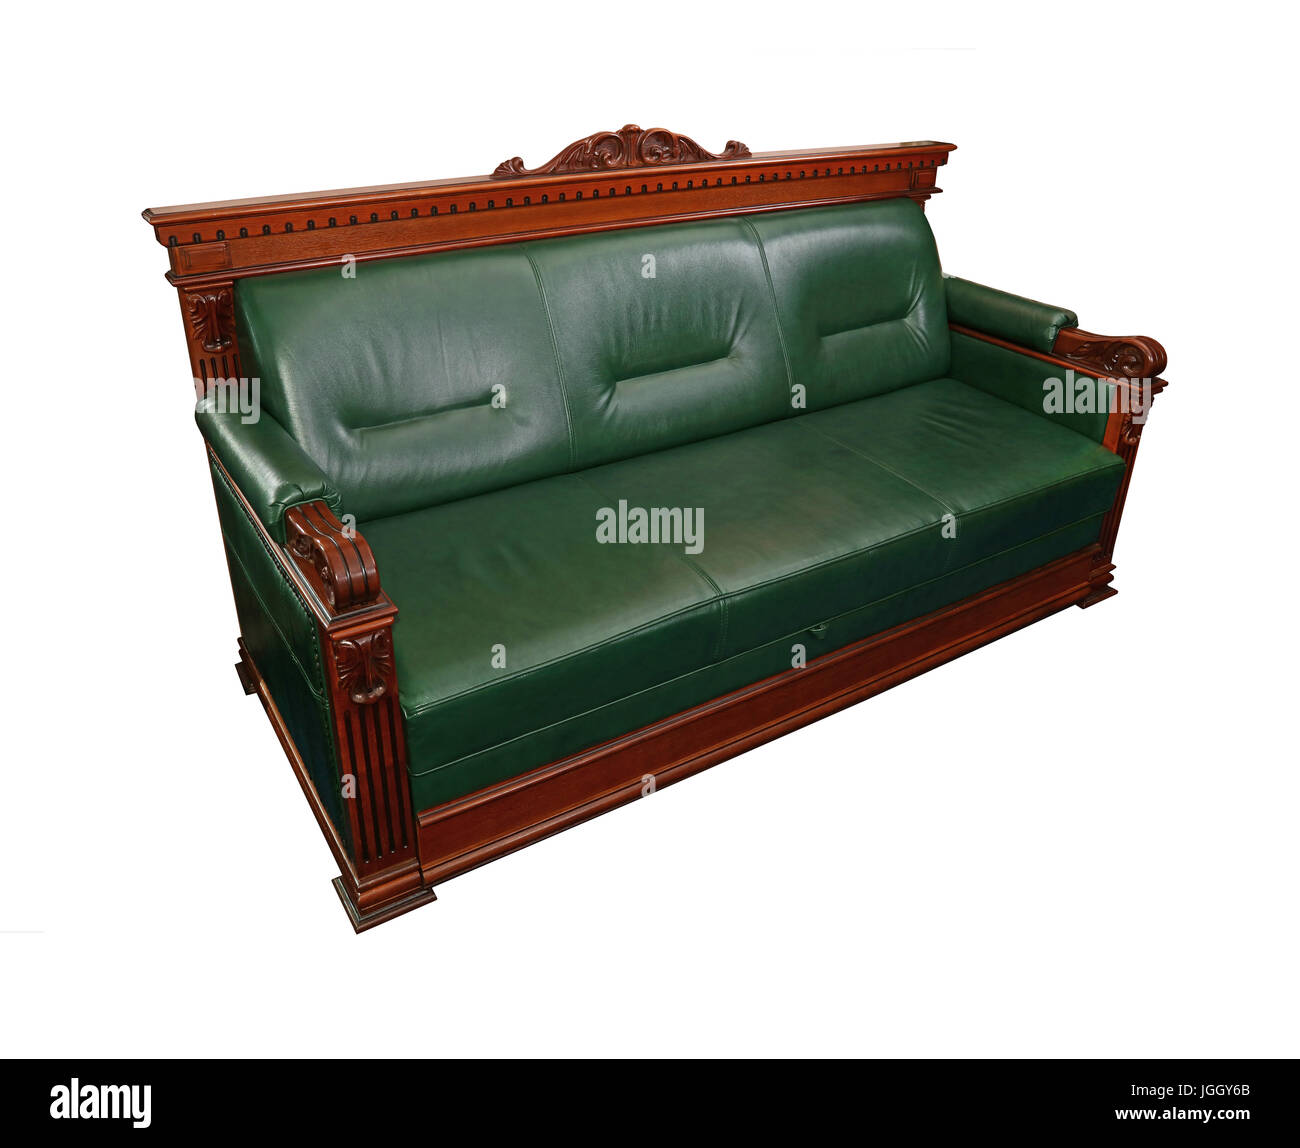 Green leather retro classic style coach sofa with brown wooden frame isolated on white close up high angle side view